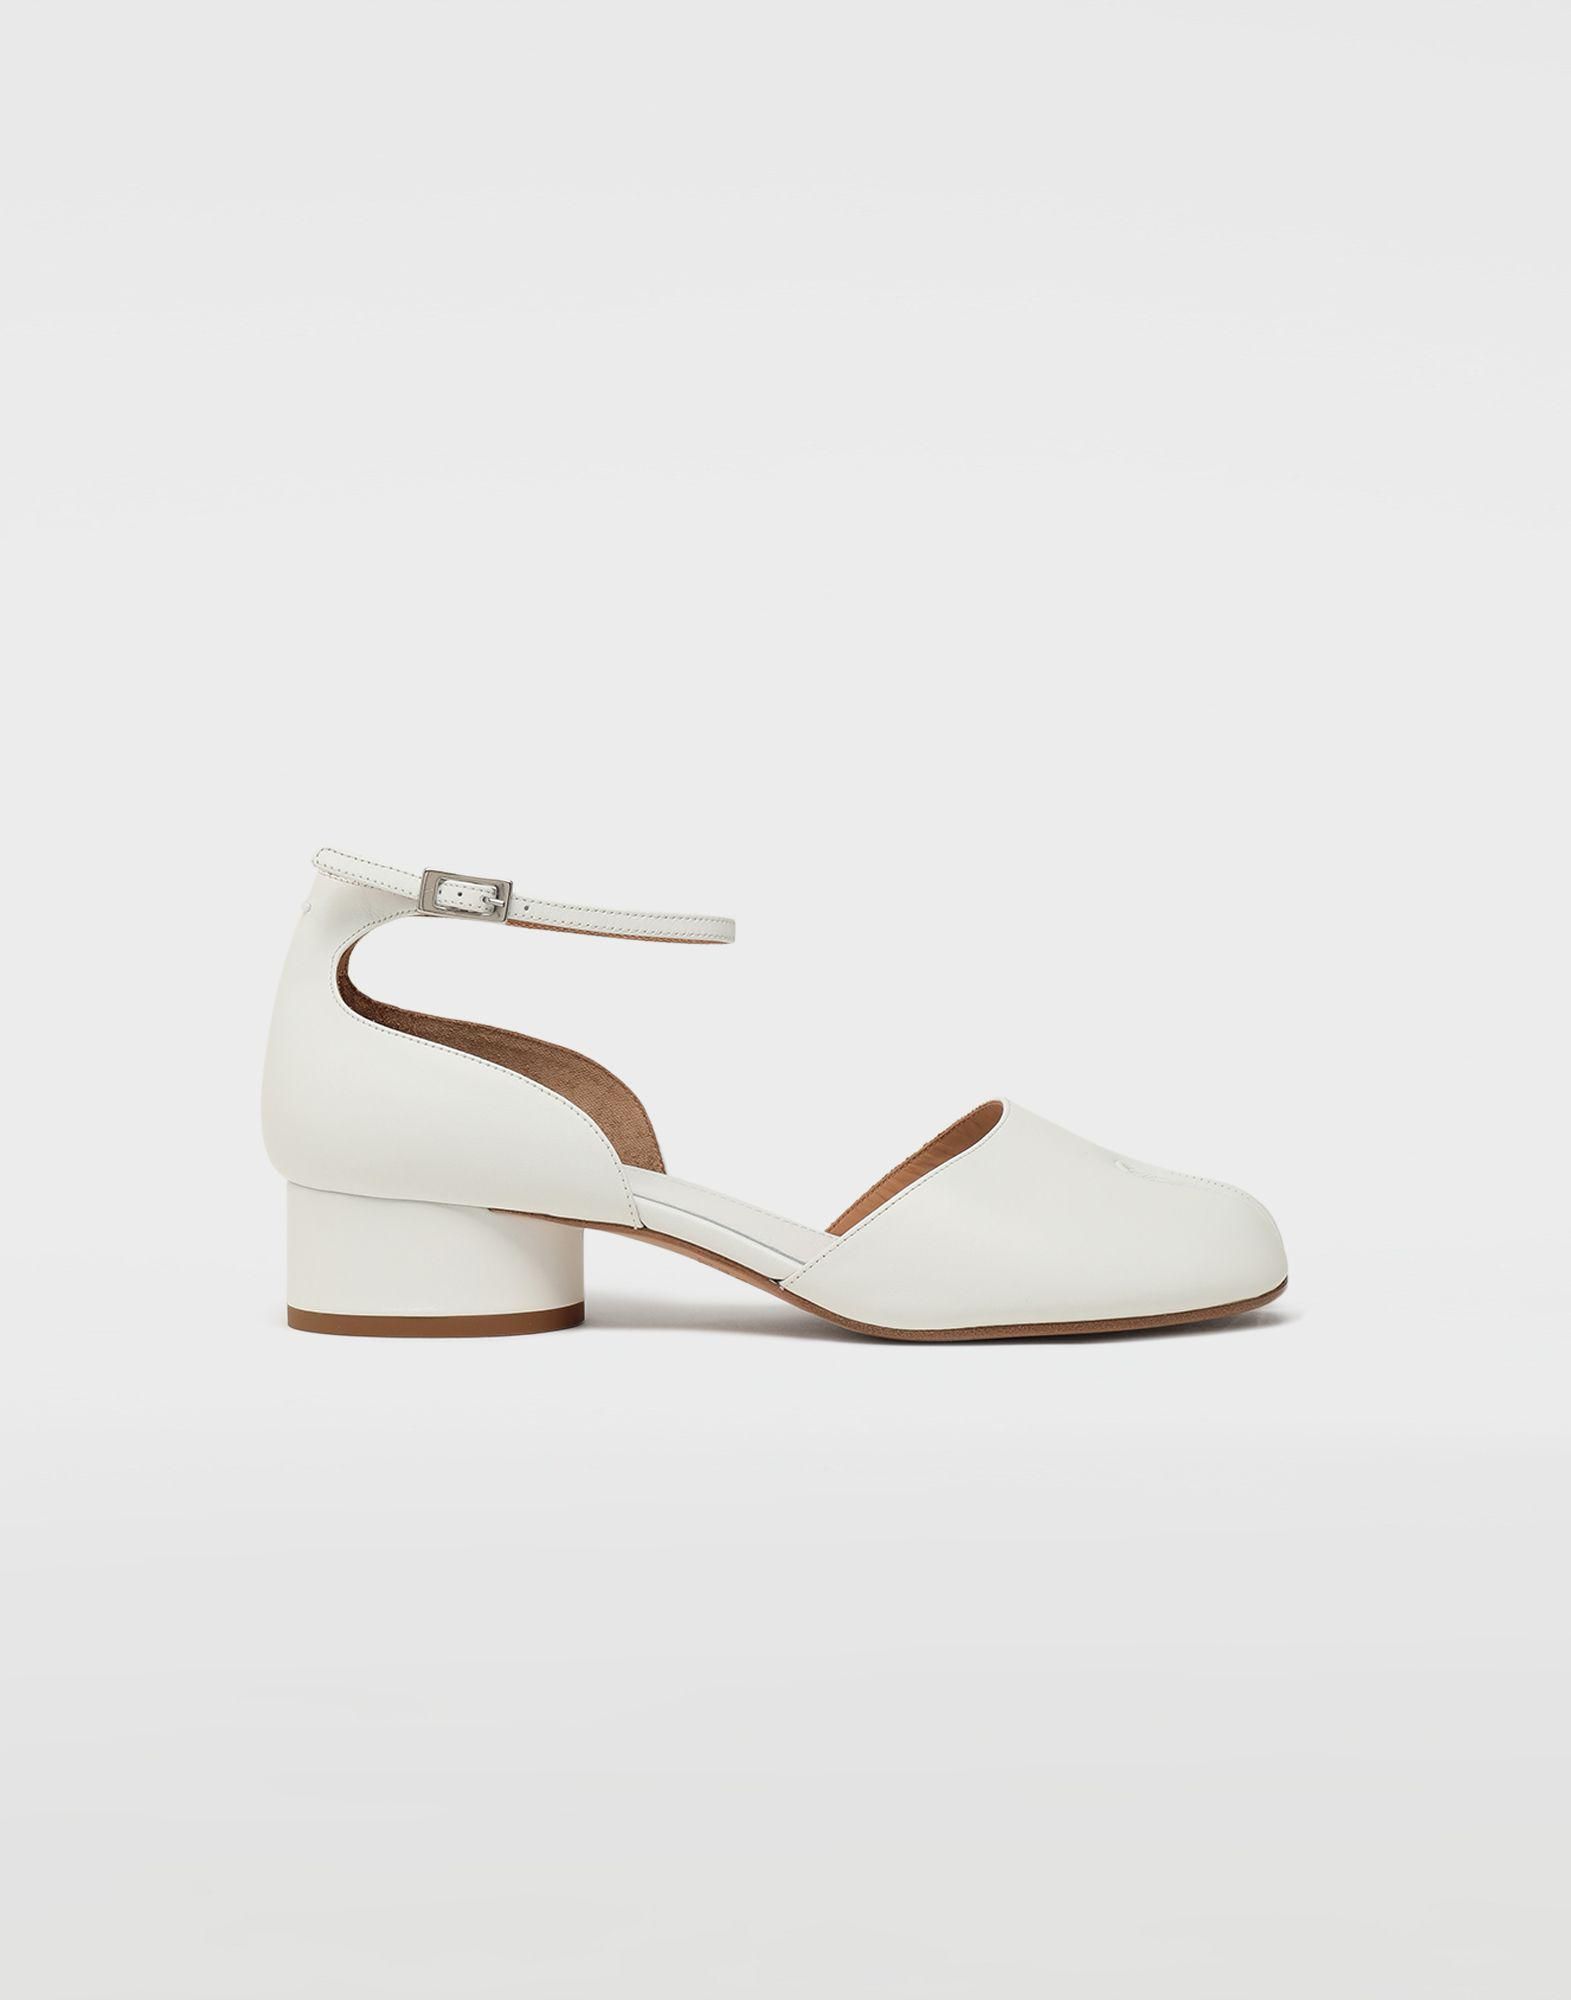 d9bf1cfa1250 Lyst - Maison Margiela Tabi Leather Ankle Strap Shoes in White